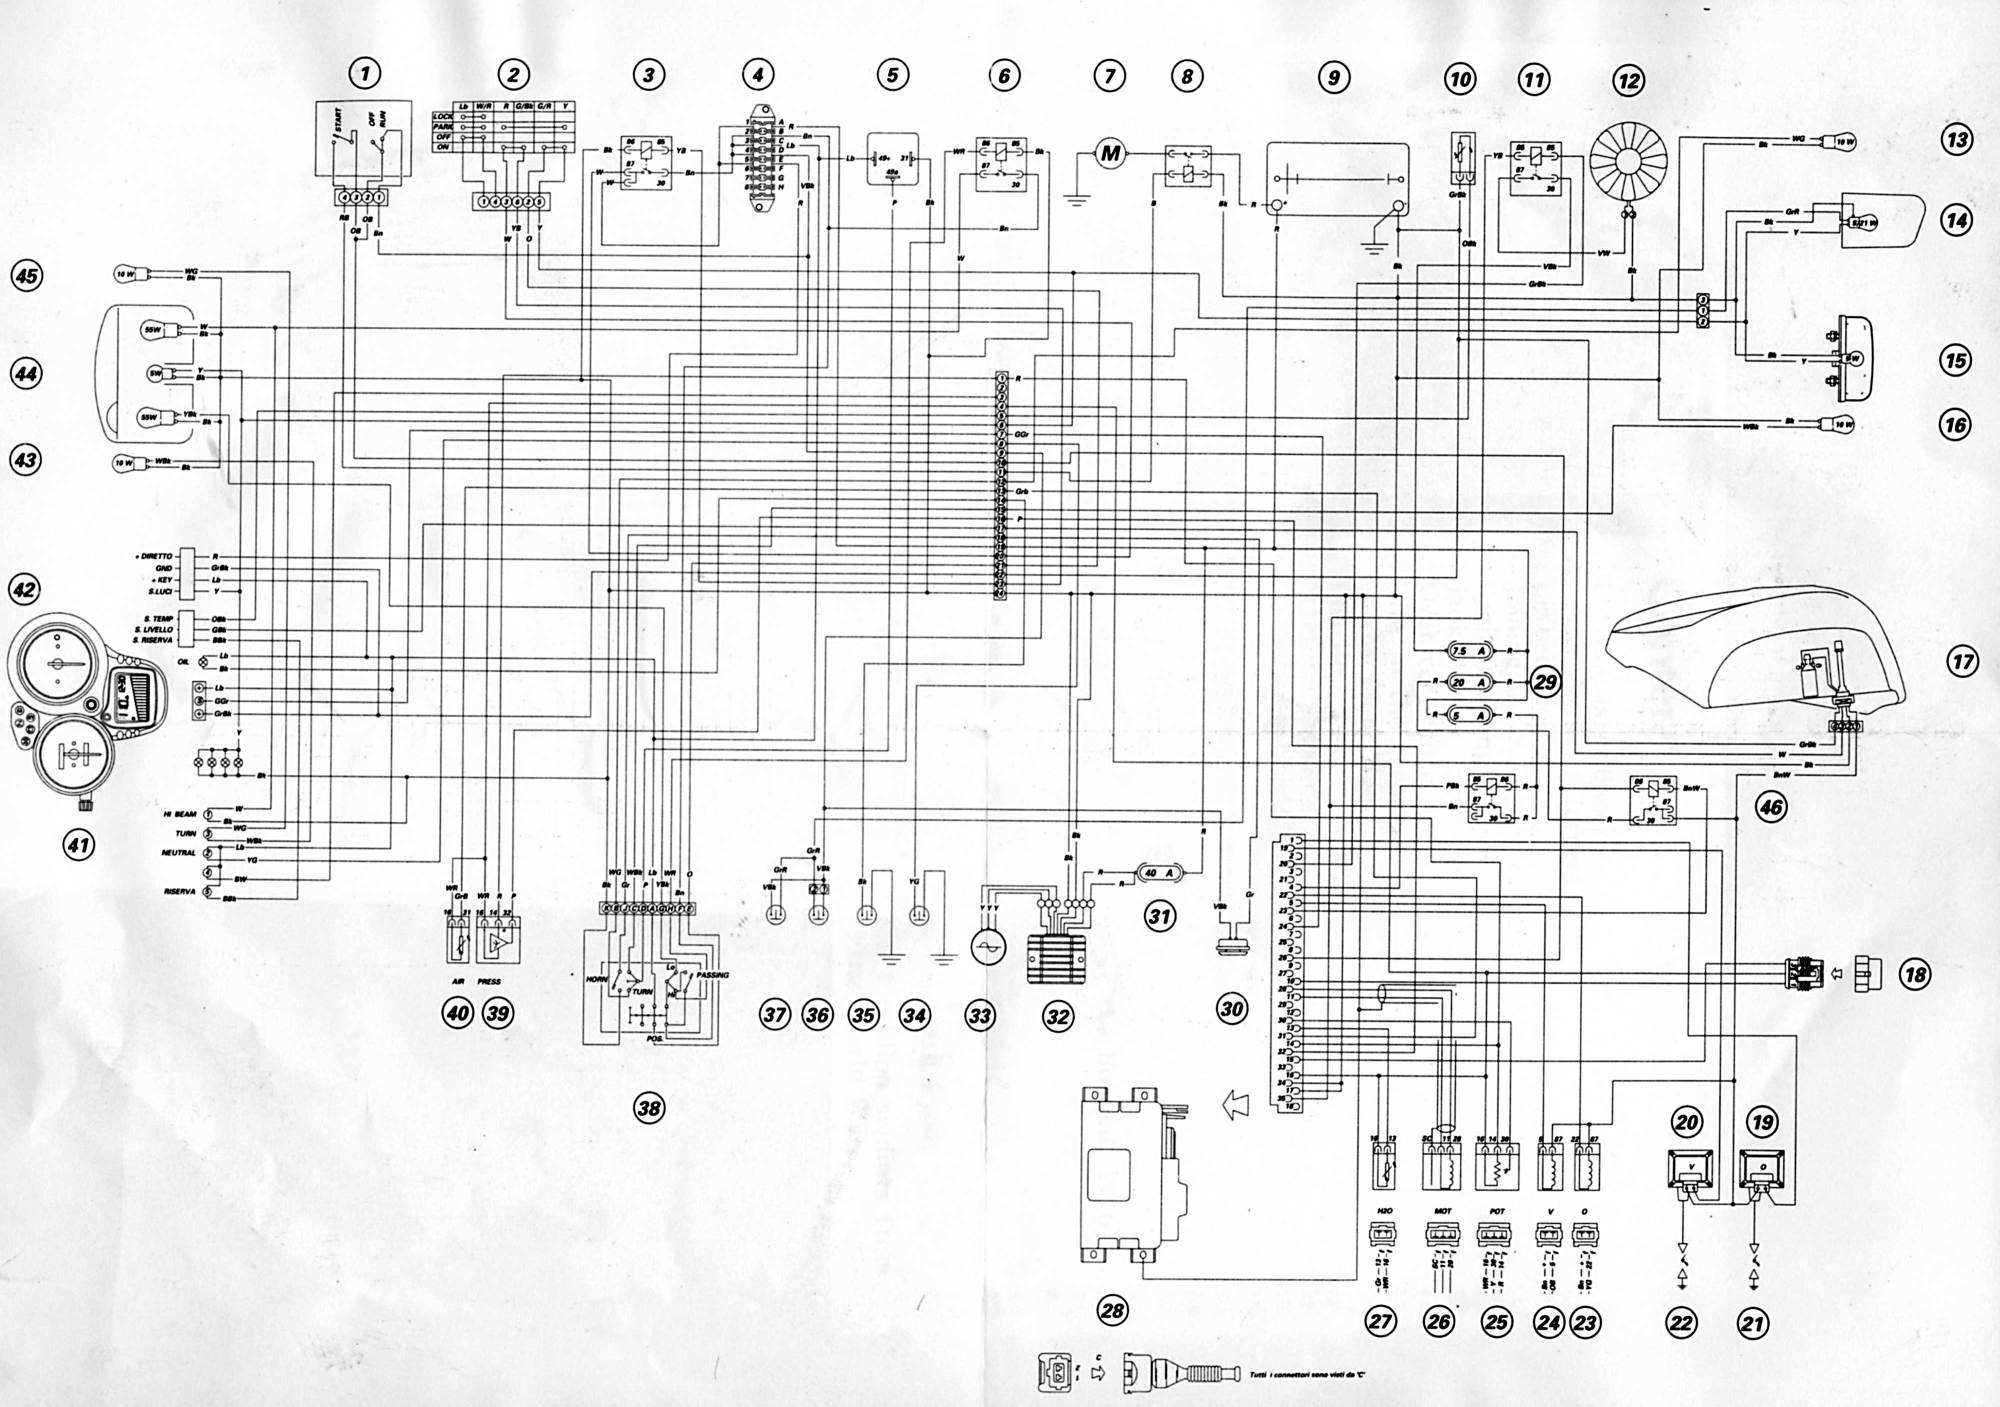 hight resolution of  26309d1201273825 st4 wiring diagram legend wiring diagram st4 2000my wiring diagram symbol legend the wiring diagram